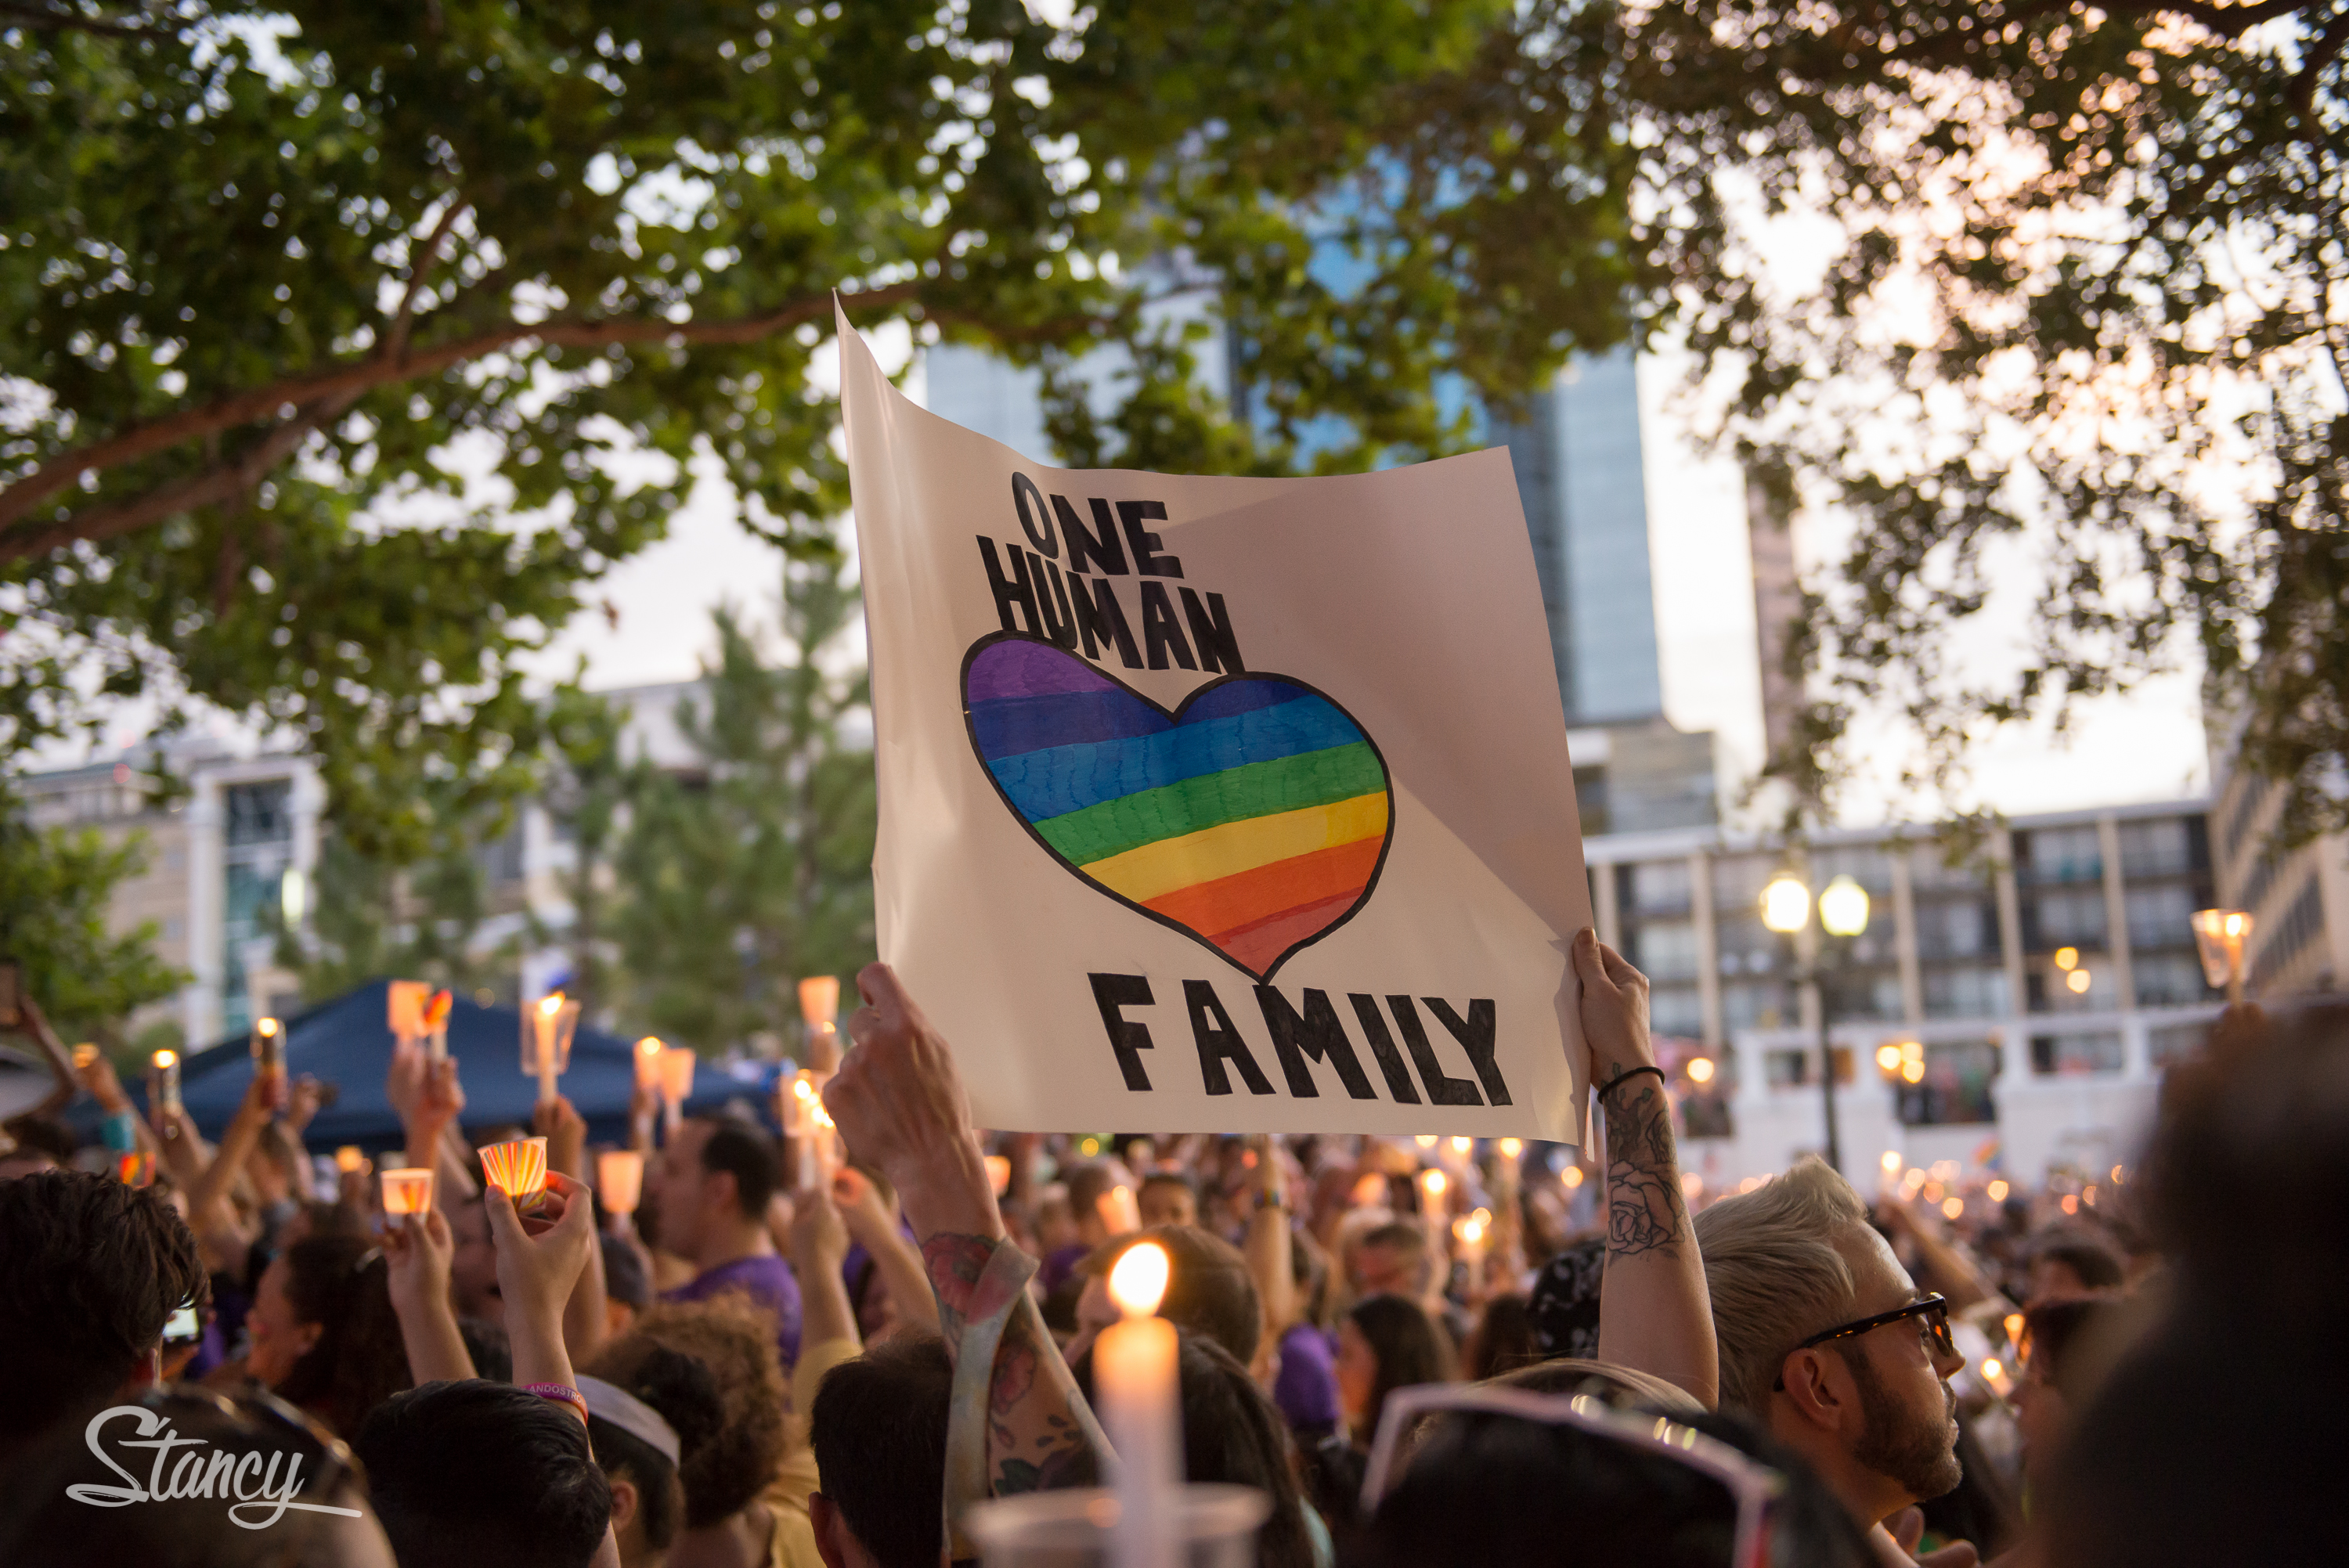 Above a sea of hands holding lit candles in the air, someone holds a sign with a rainbow heart: